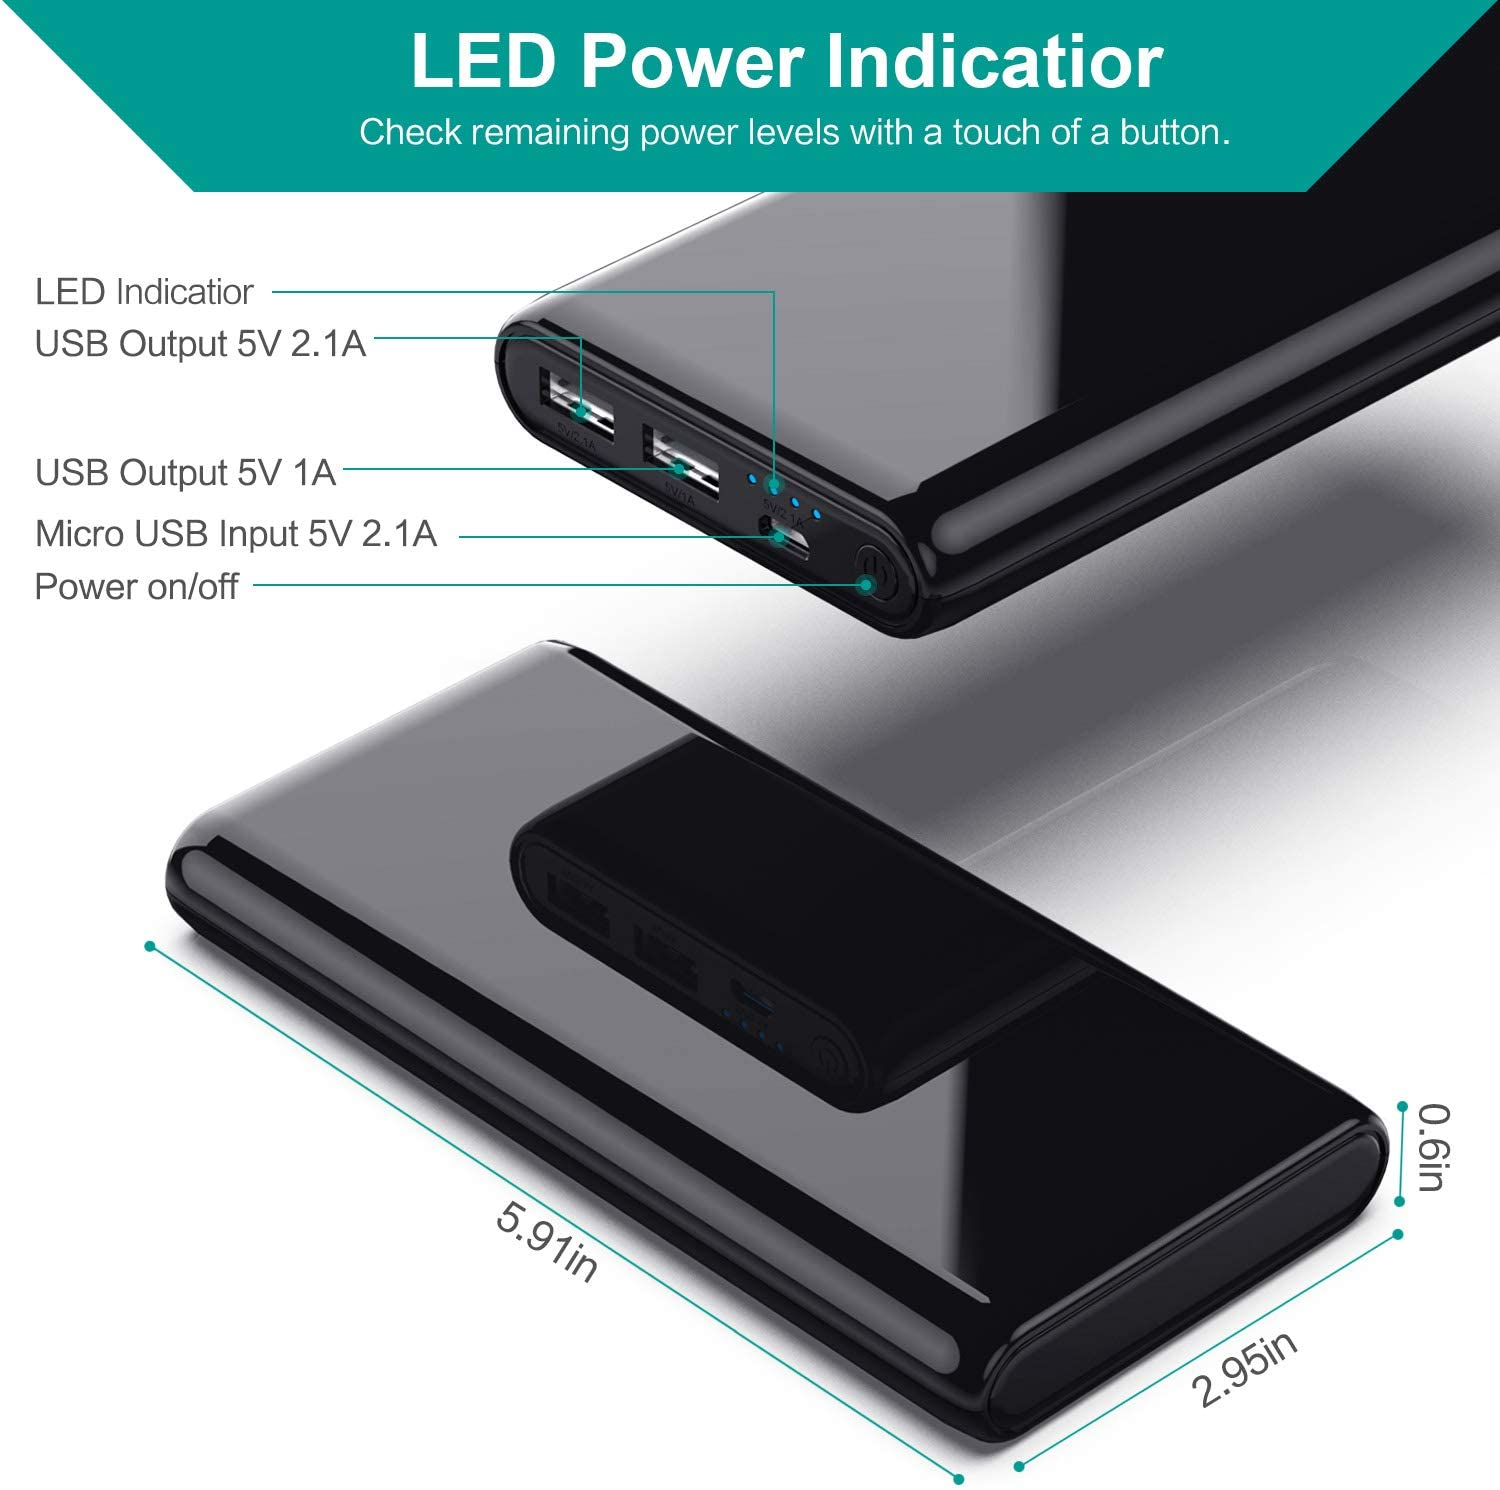 2 USB Ports External Cell Phone Battery Pack for iPhone,Samsung Android,Tablet etc Portable Charger Power Bank 25800mAh 【NEW Mirror Design】Huge Capacity Phone Charging with 4 LED Indicators